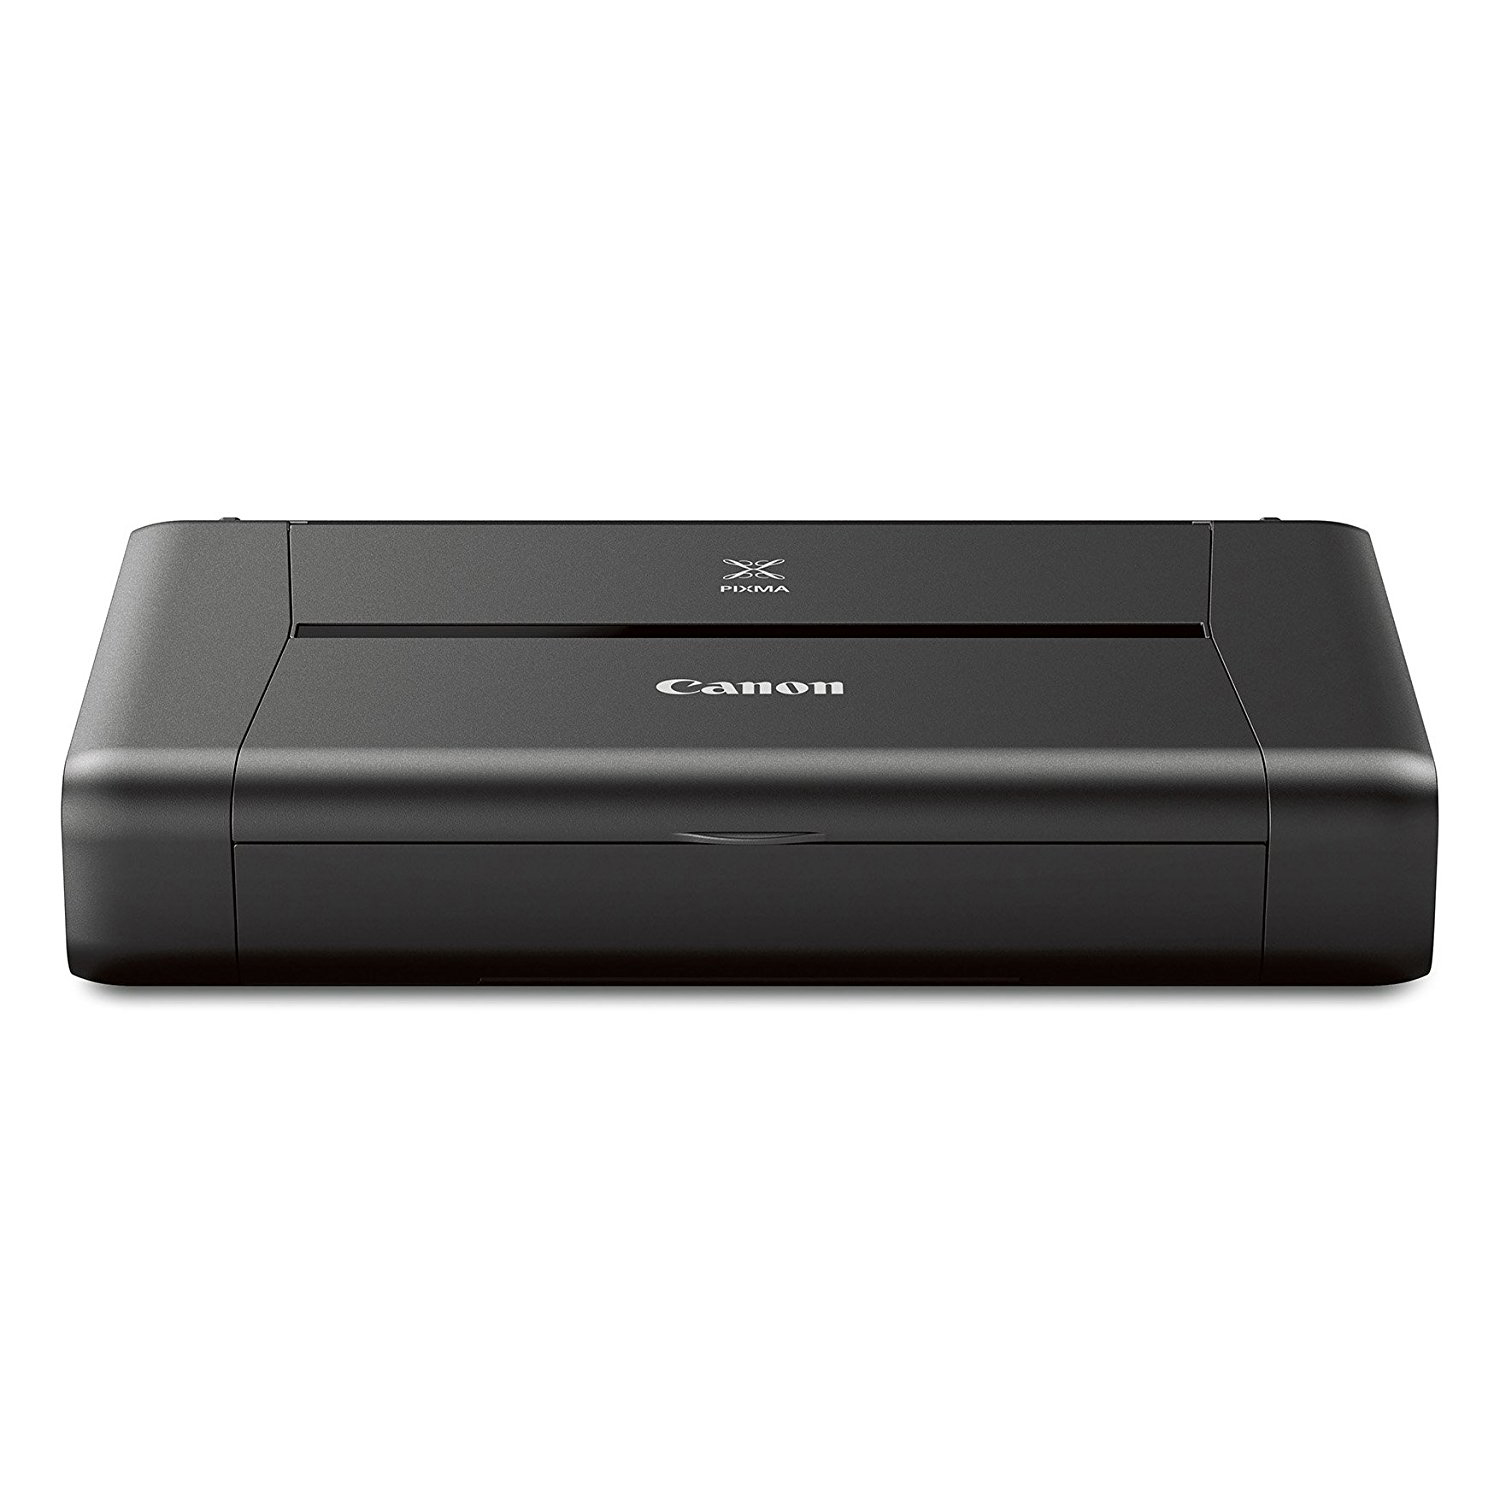 Canon PIXMA iP110 Wireless Office Mobile Printer